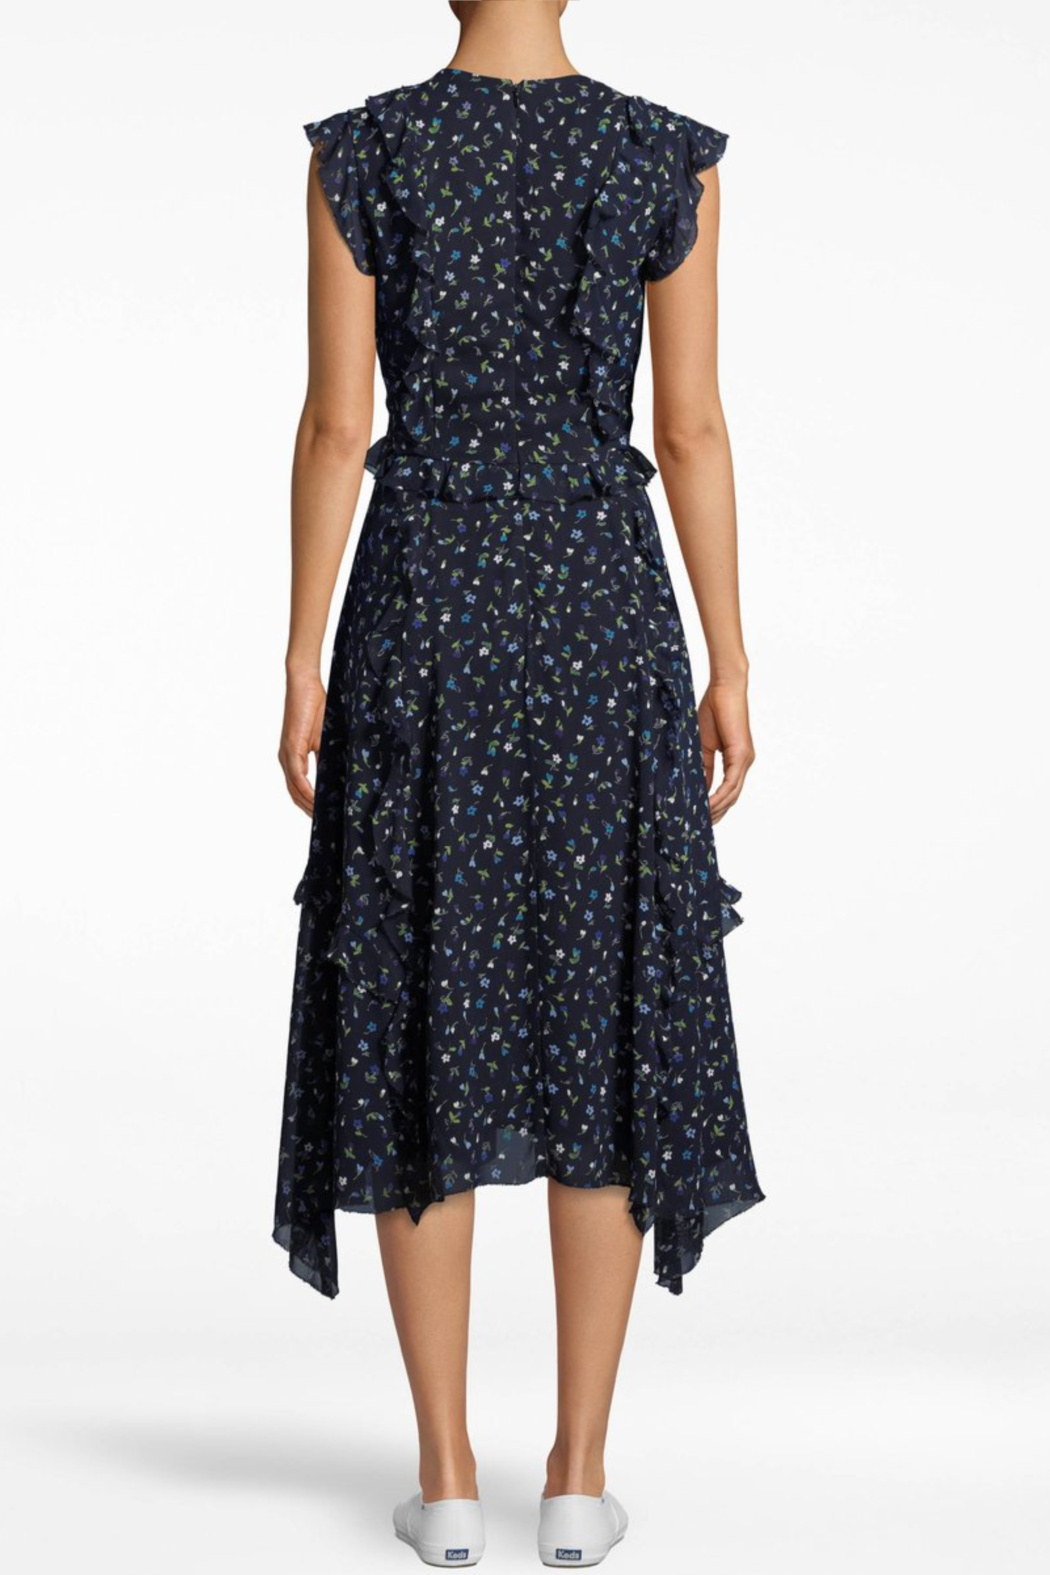 Nicole Miller Ditsy Ruffle Dress - Front Full Image